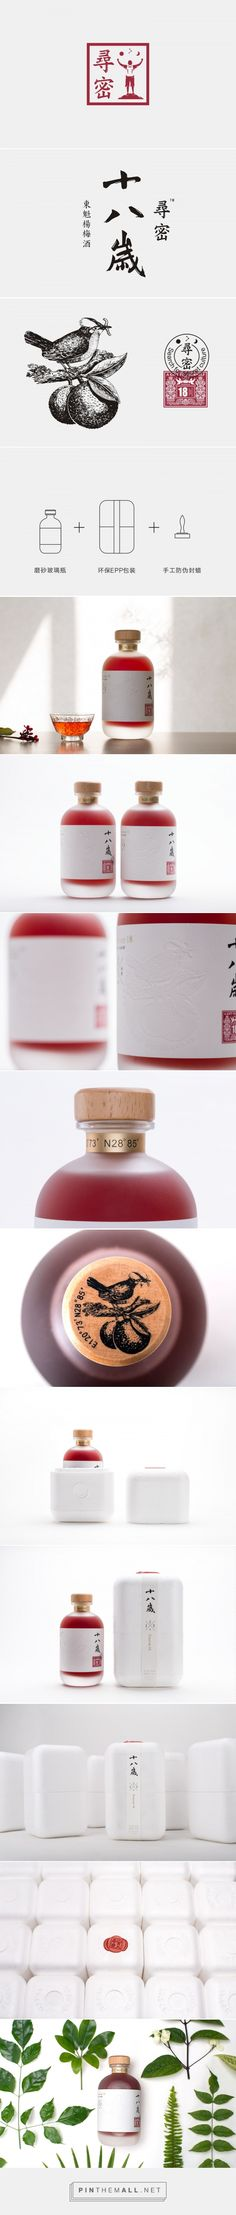 Forever 18 Bayberry Wine packaging design by Unidea Bank - http://www.packagingoftheworld.com/2018/01/forever-18-bayberry-wine.html - created via https://pinthemall.net